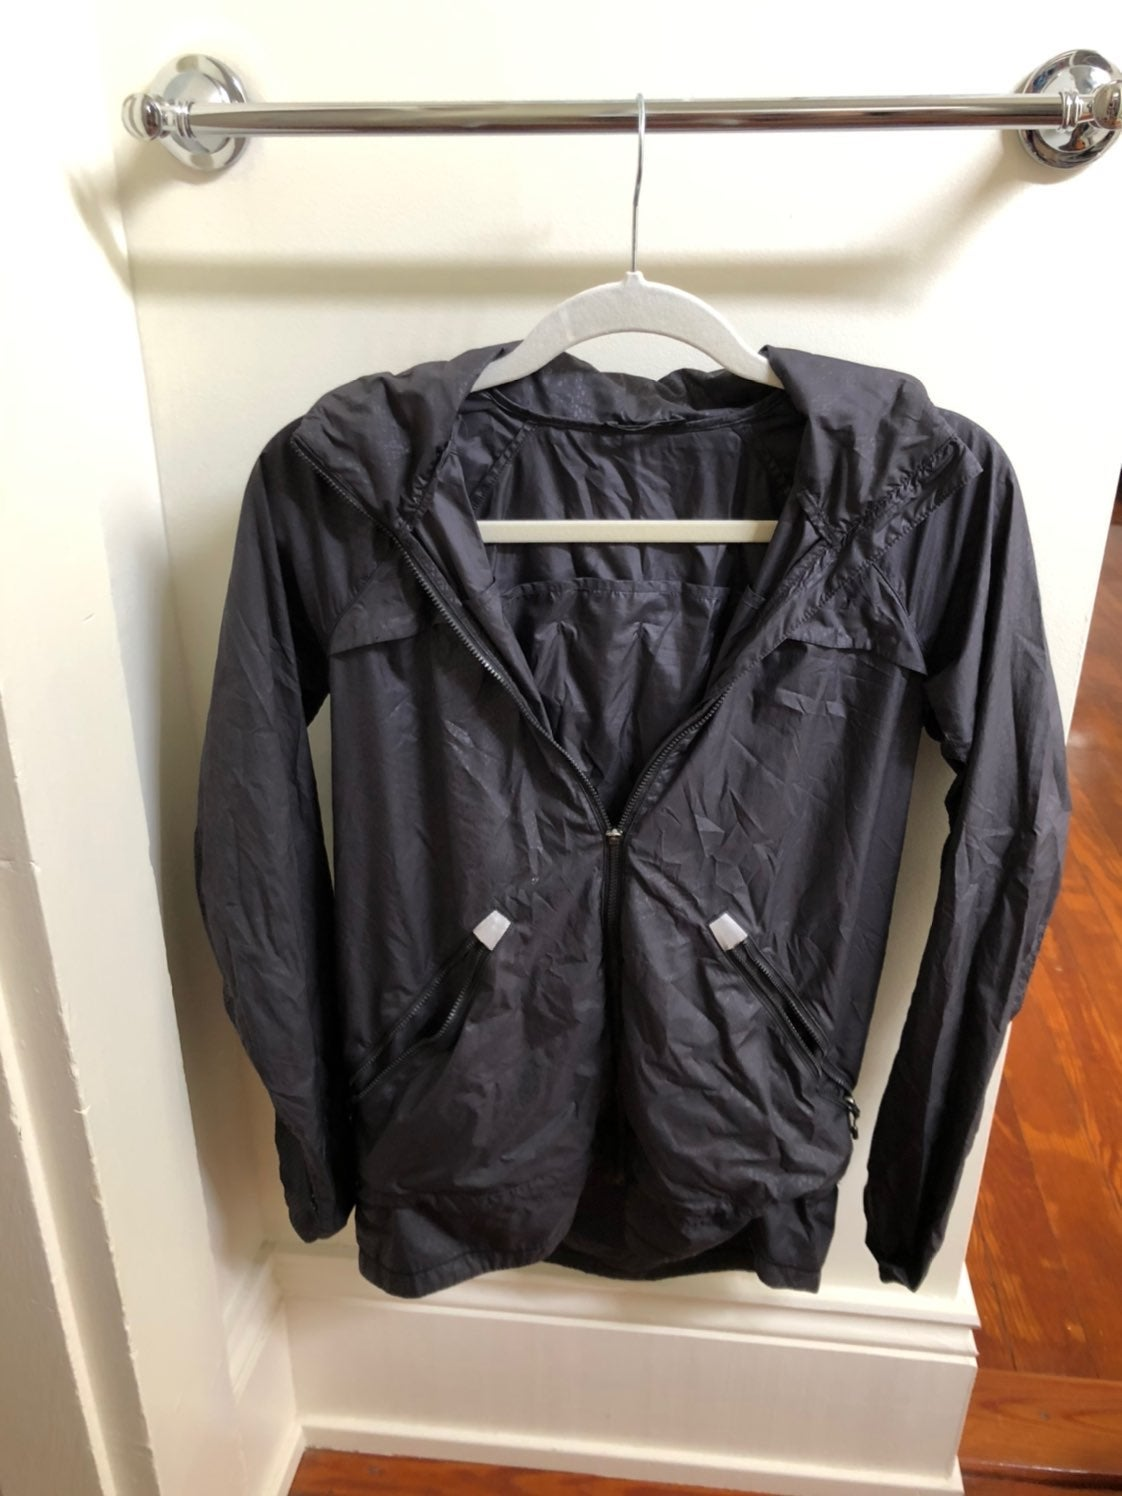 Lululemon Black Ladies Windbreaker Rain